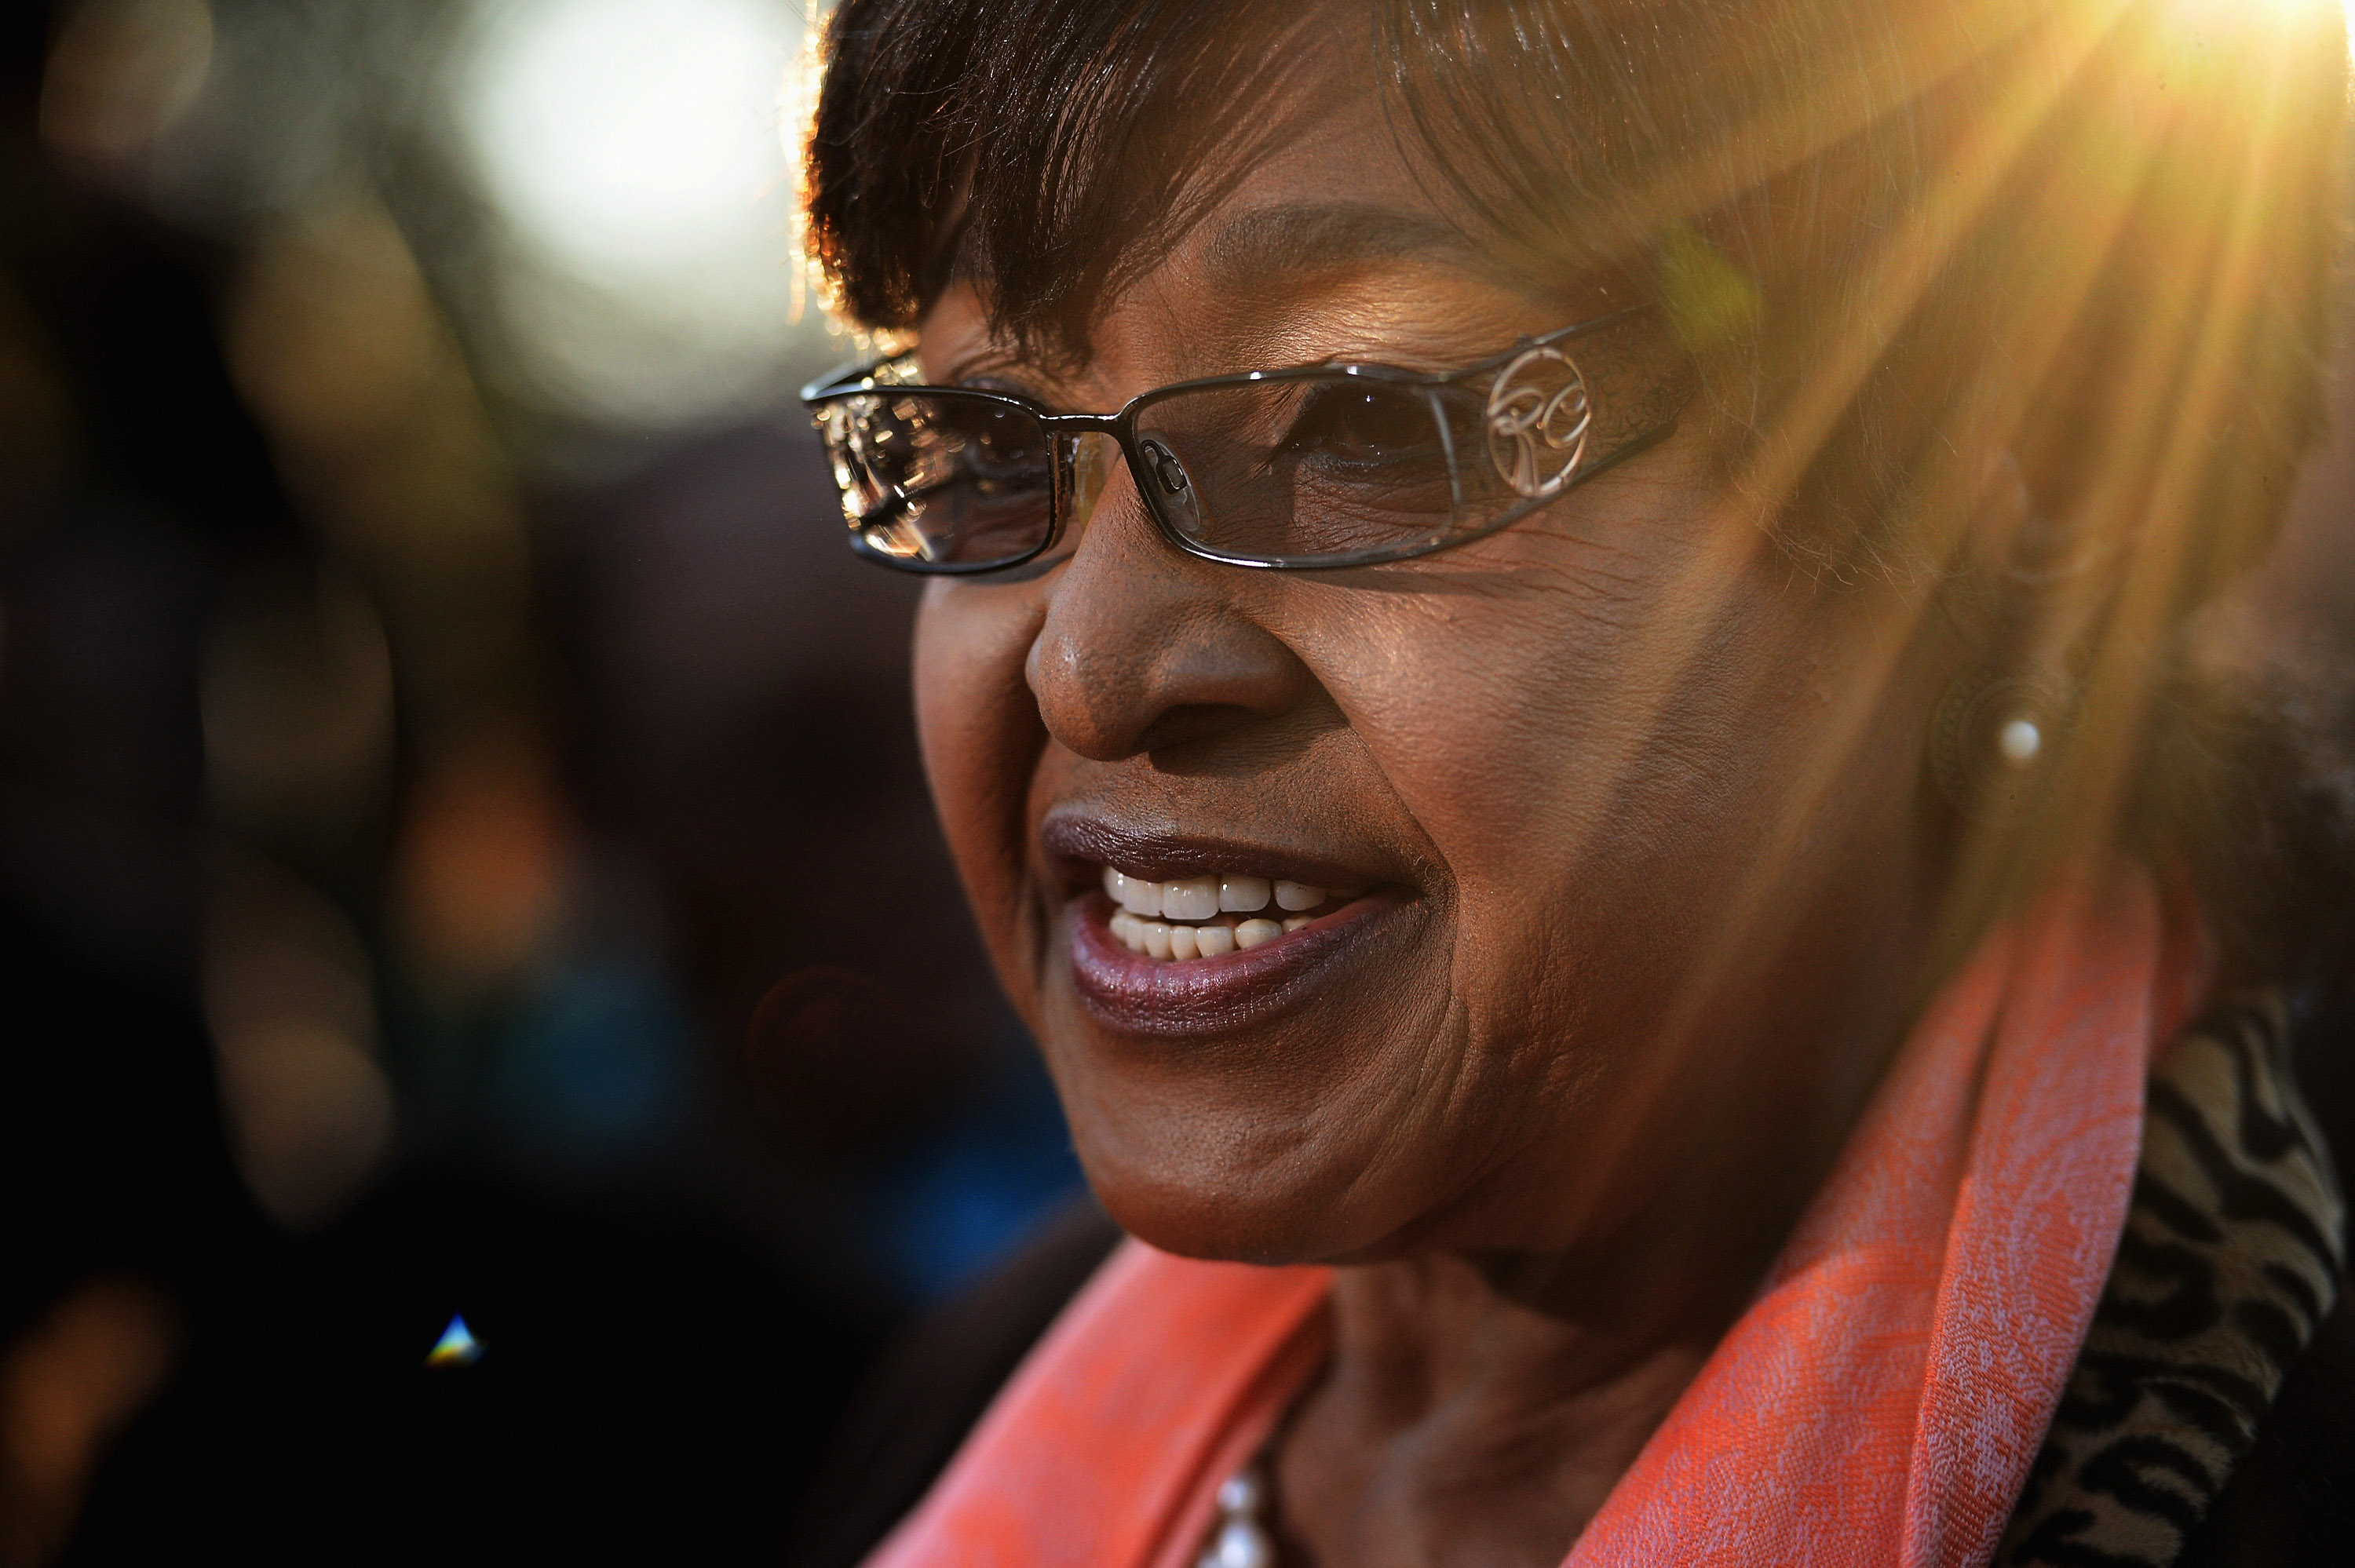 Winnie Madikizela Mandela former wife of Nelson Mandela makes a statement to the media outside their first family home in the Soweto Township on June 28, 2013 in Johannesburg, South Africa. People continue to gather and lay flowers and tributes outside the Mediclinic Heart Hospital where Mandela is being treated for a lung infection on his 21st day in hospital..